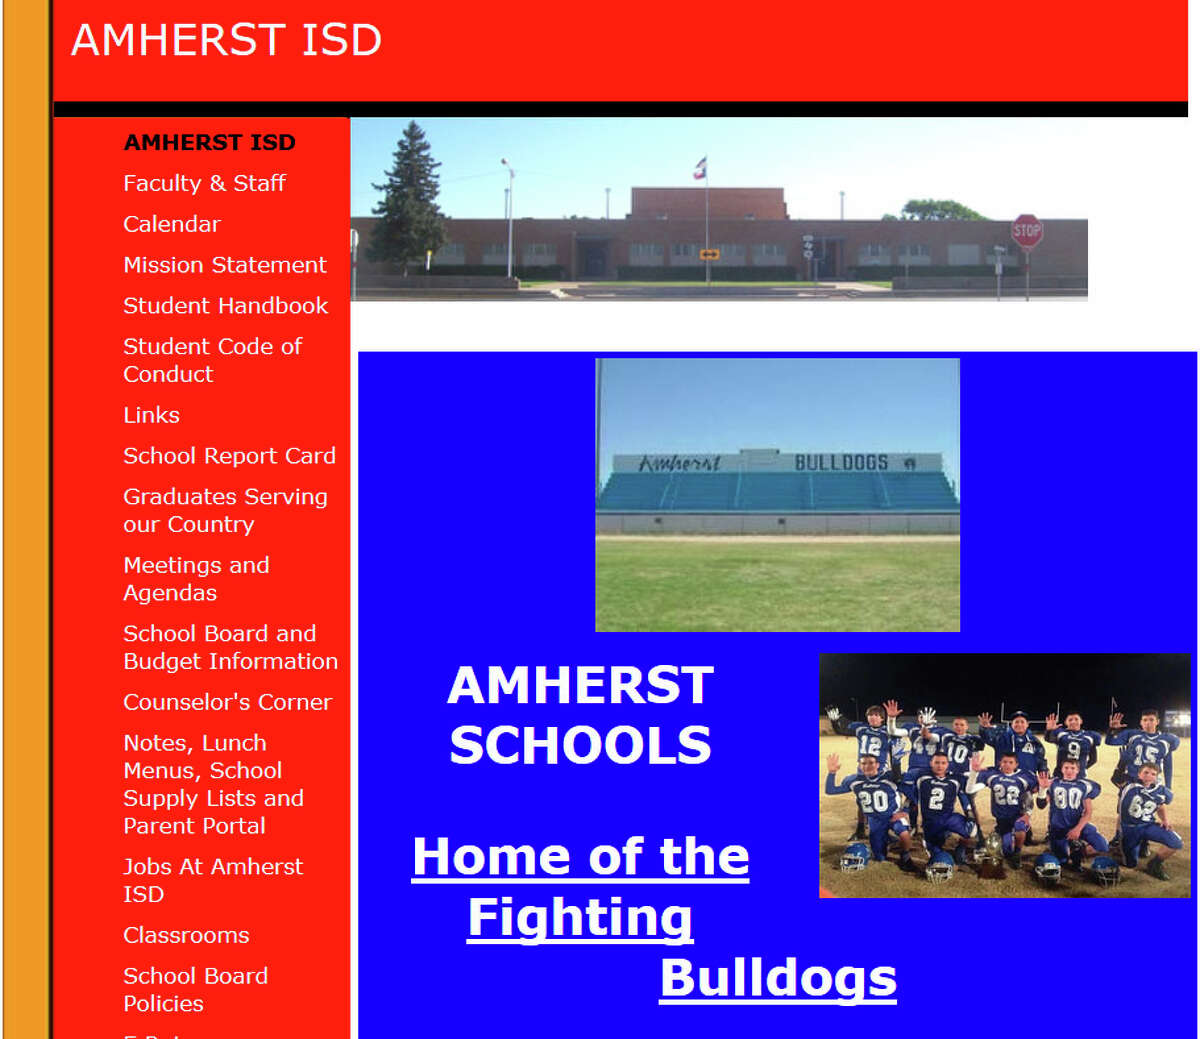 Amherst: 467 per 1,000 students